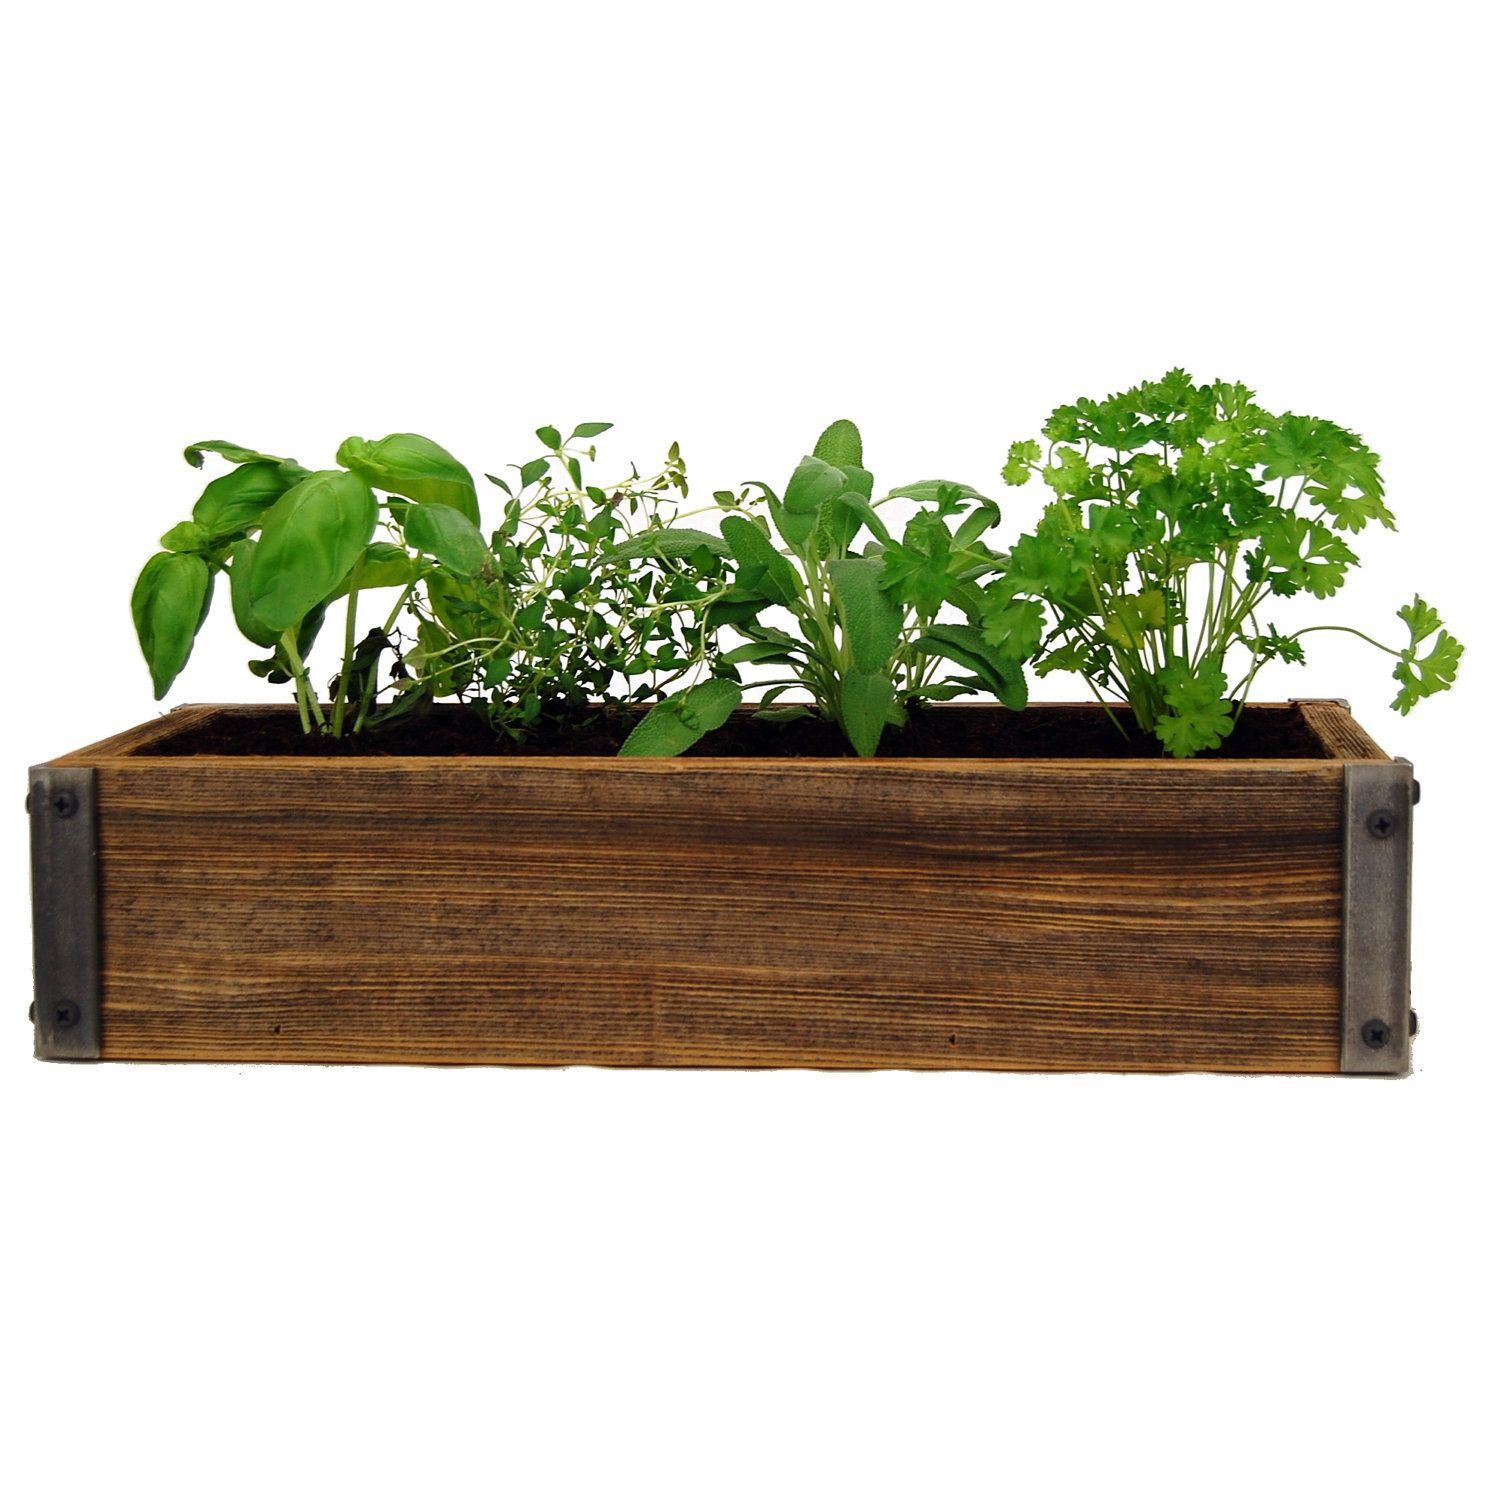 Decor Daydream #1 Reclaimed Barnwood Planter U0026 Culinary Herb Garden Kit    Grow Basil, Dill, Cilantro, More. $42.95, Via Etsy.